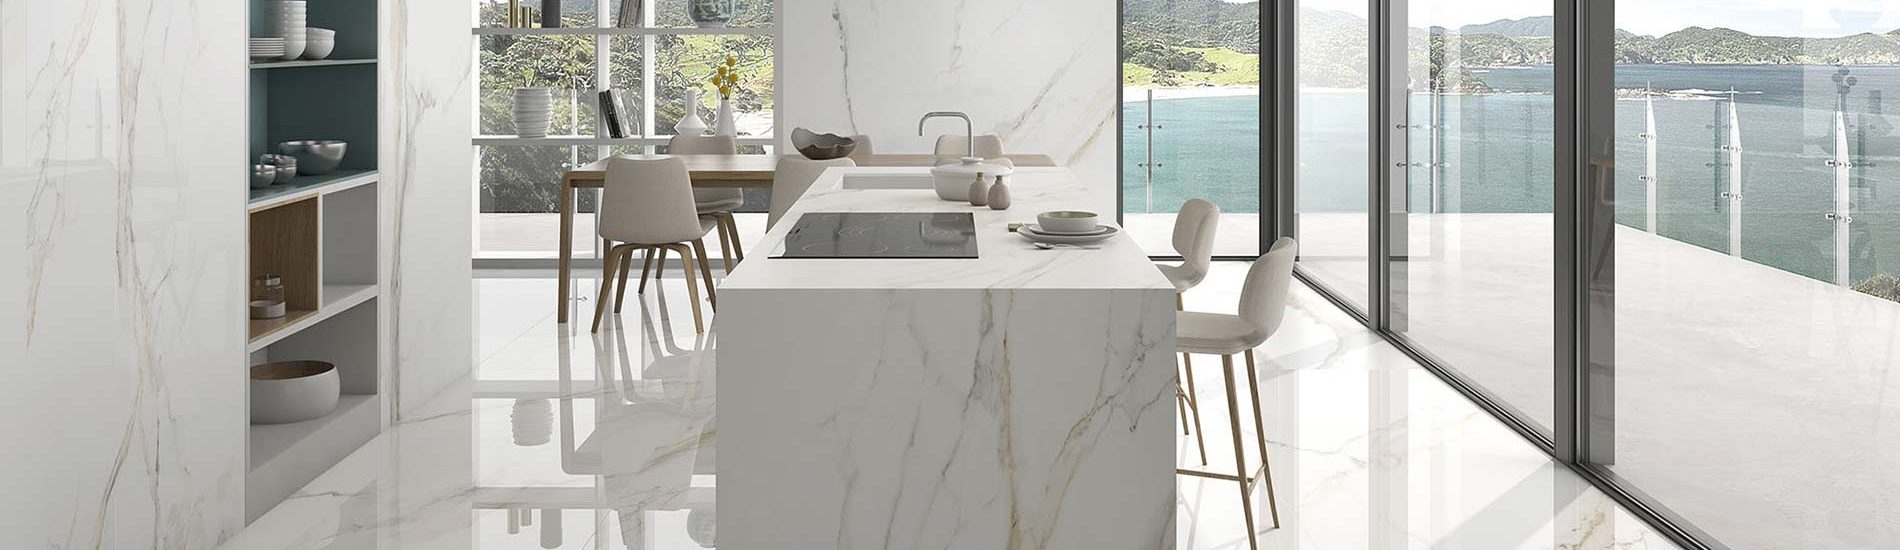 banner-Arklam-slabs-12mm-itt-ceramic-spanish-floor-wall-tile